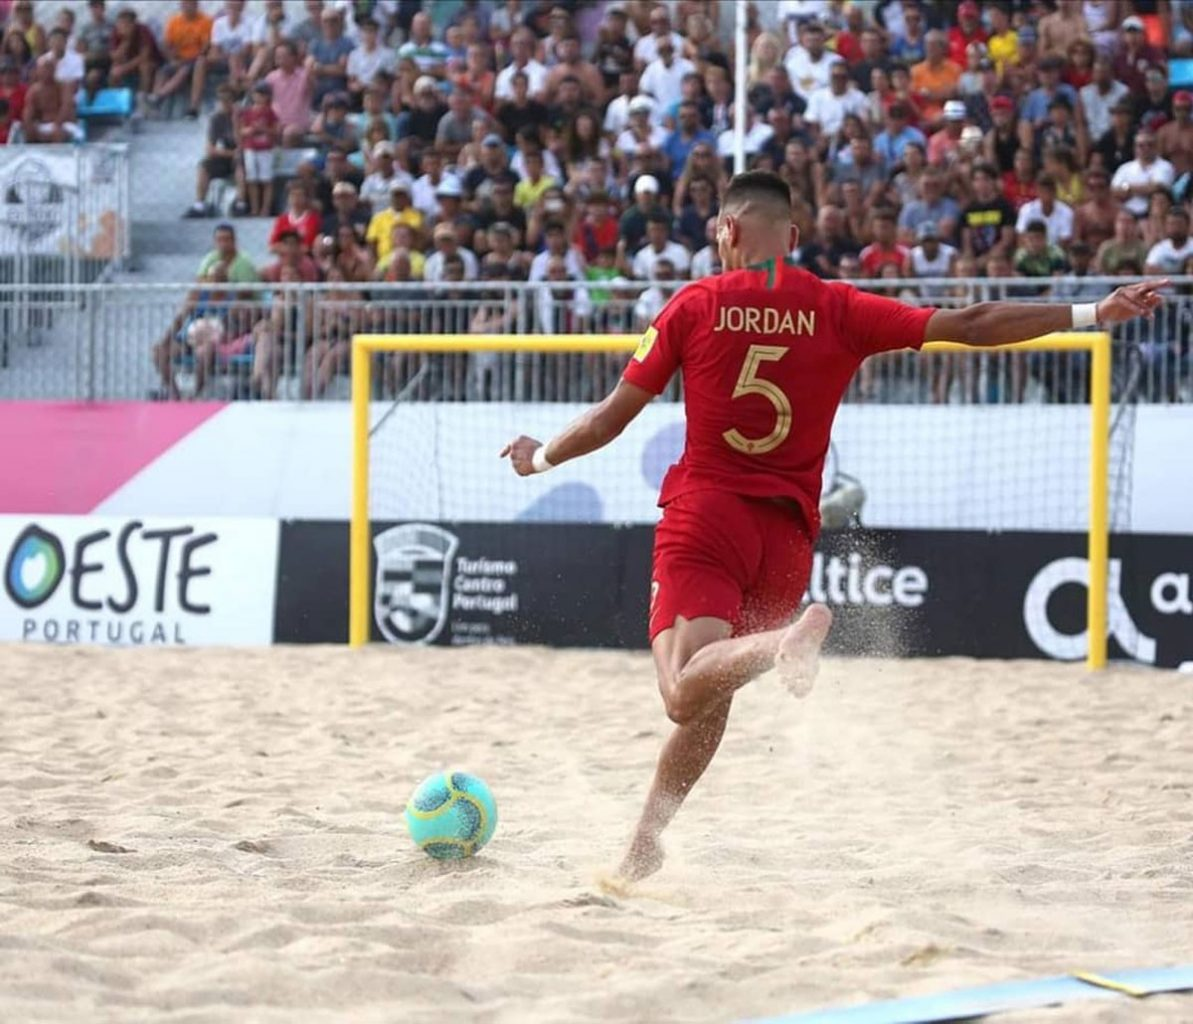 Photo of Jordan is the best beach soccer player in the world